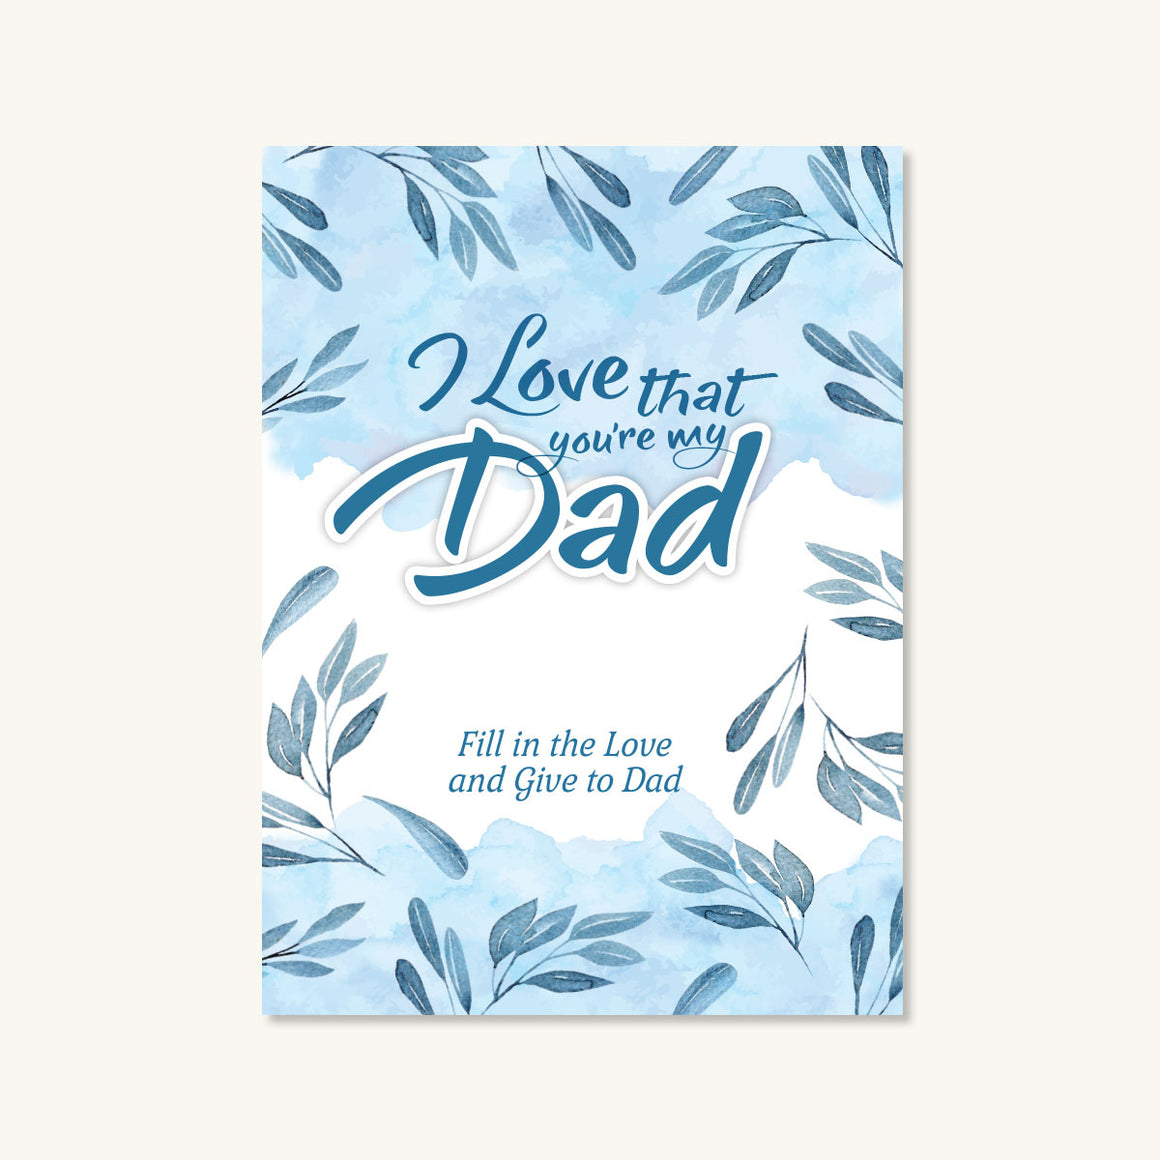 I Love That You're My Dad Journal